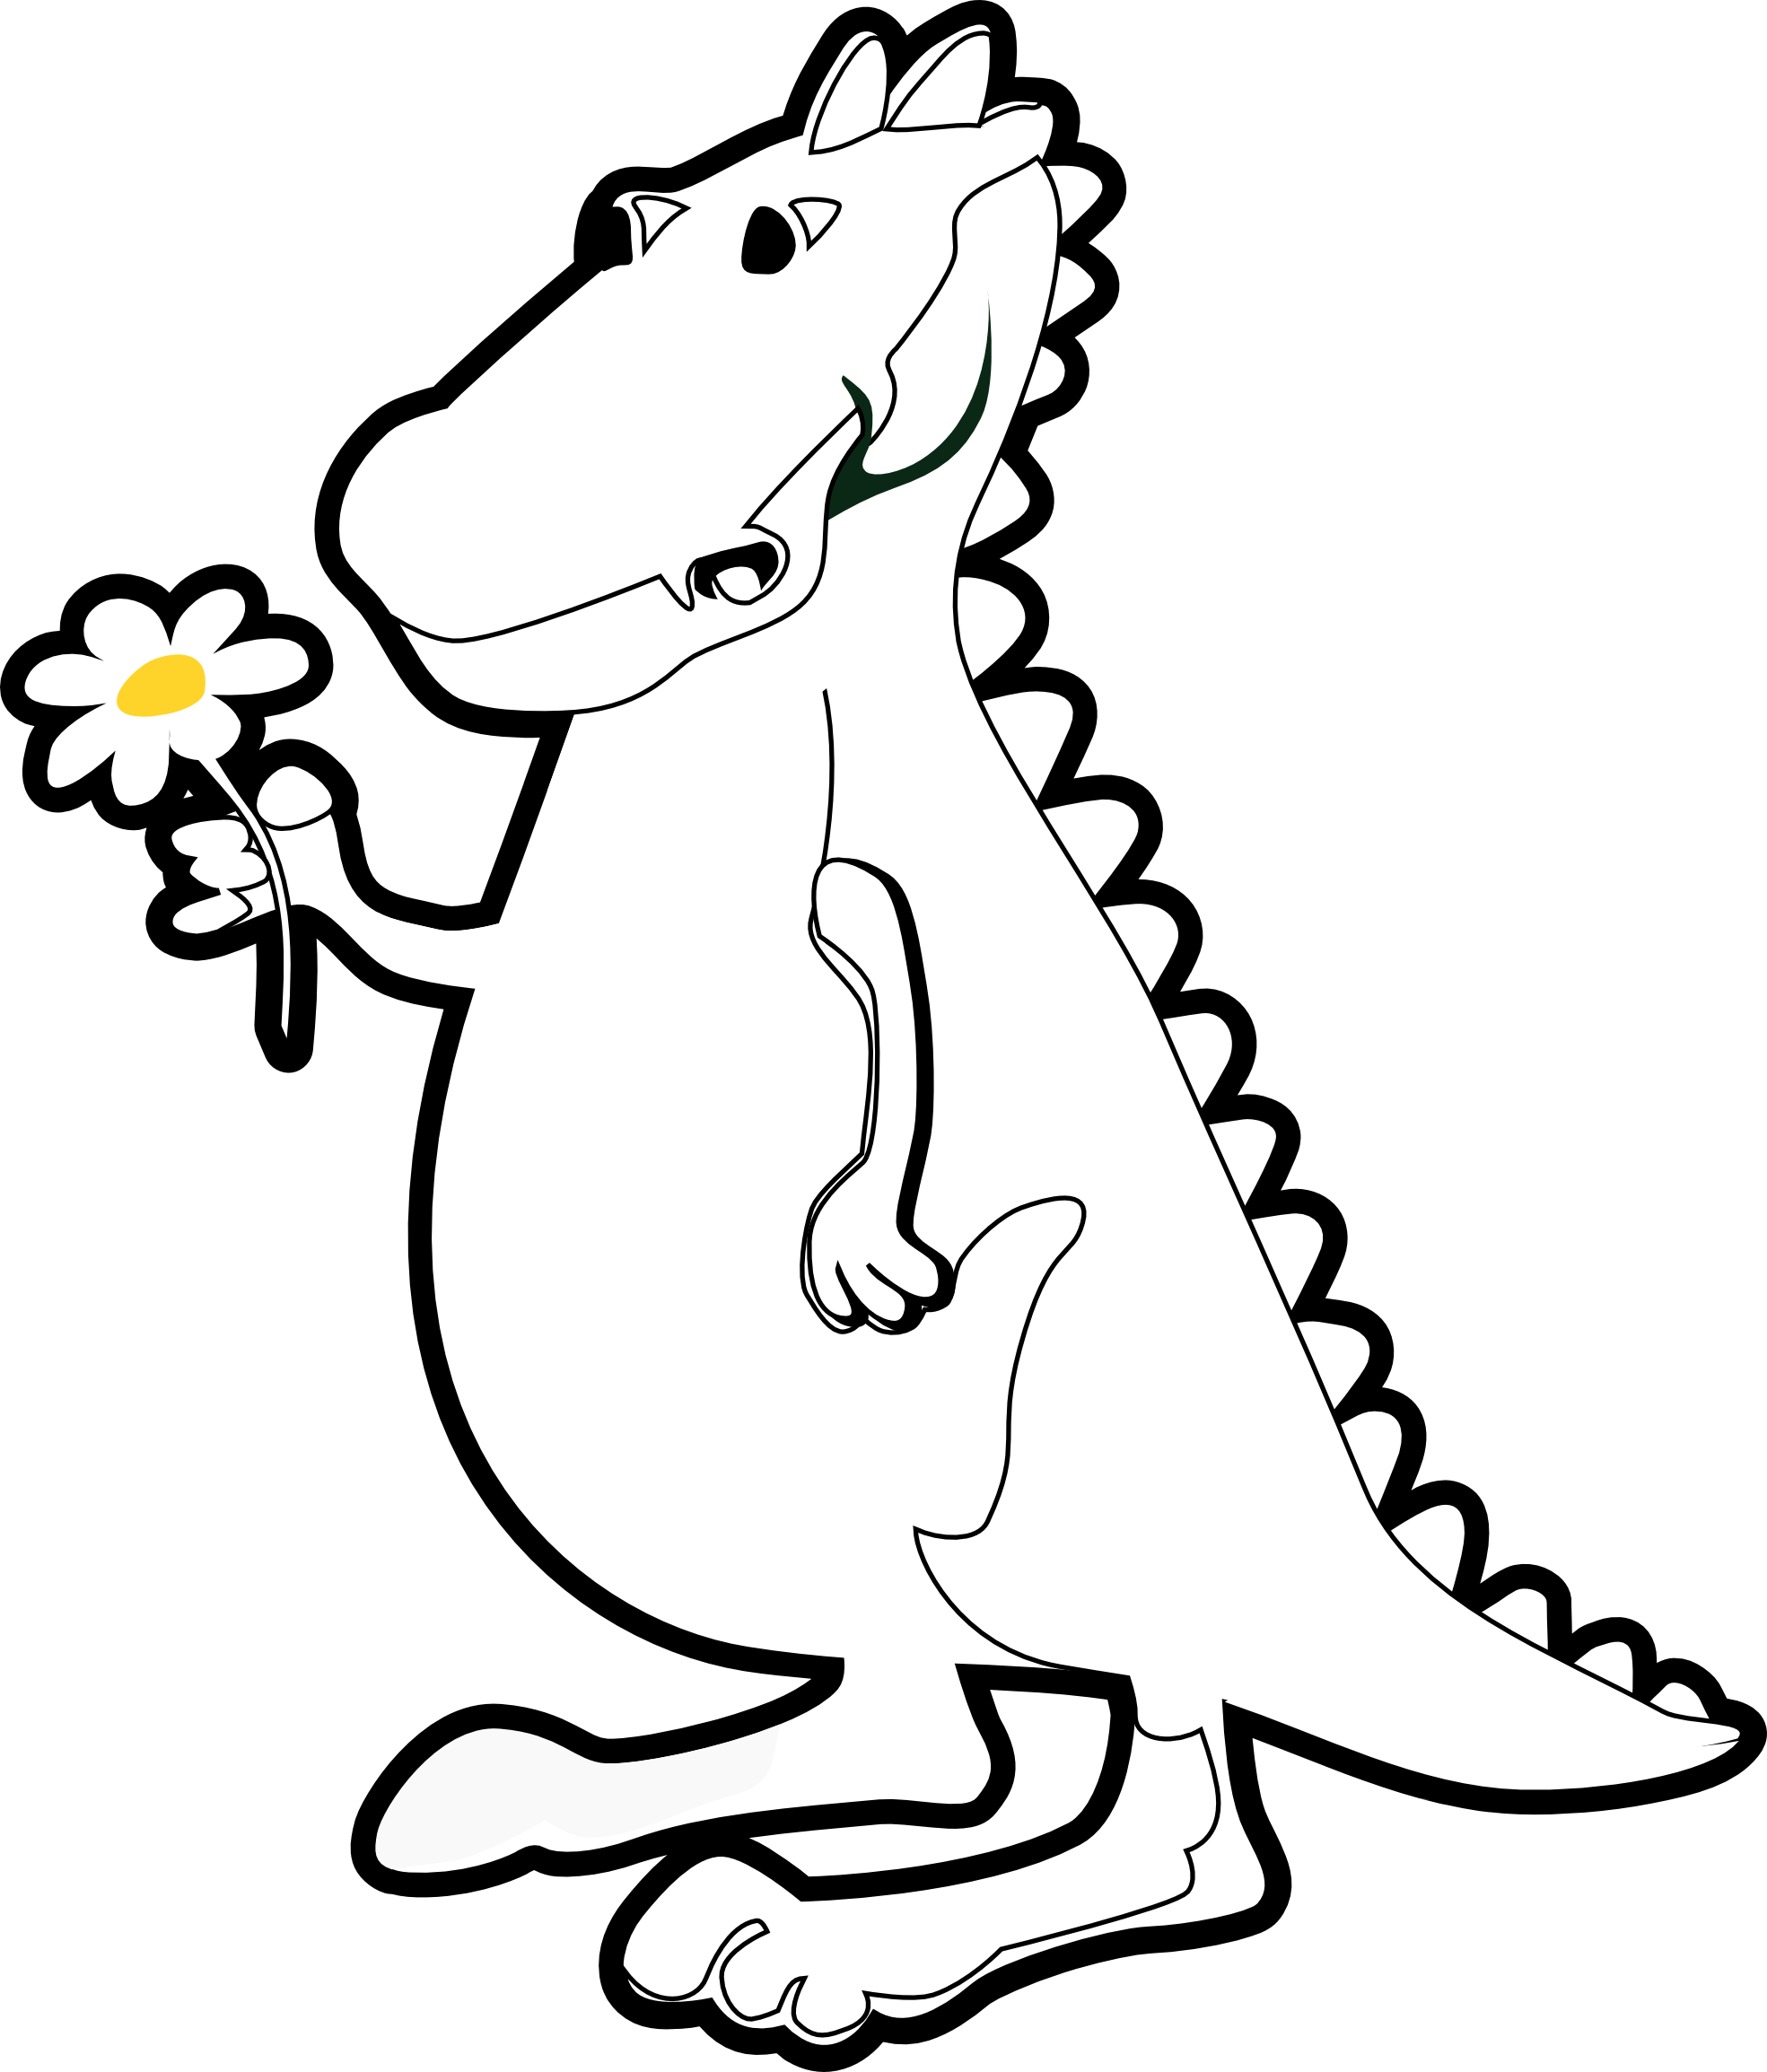 trex clipart black and white - T Rex PNG Black And White